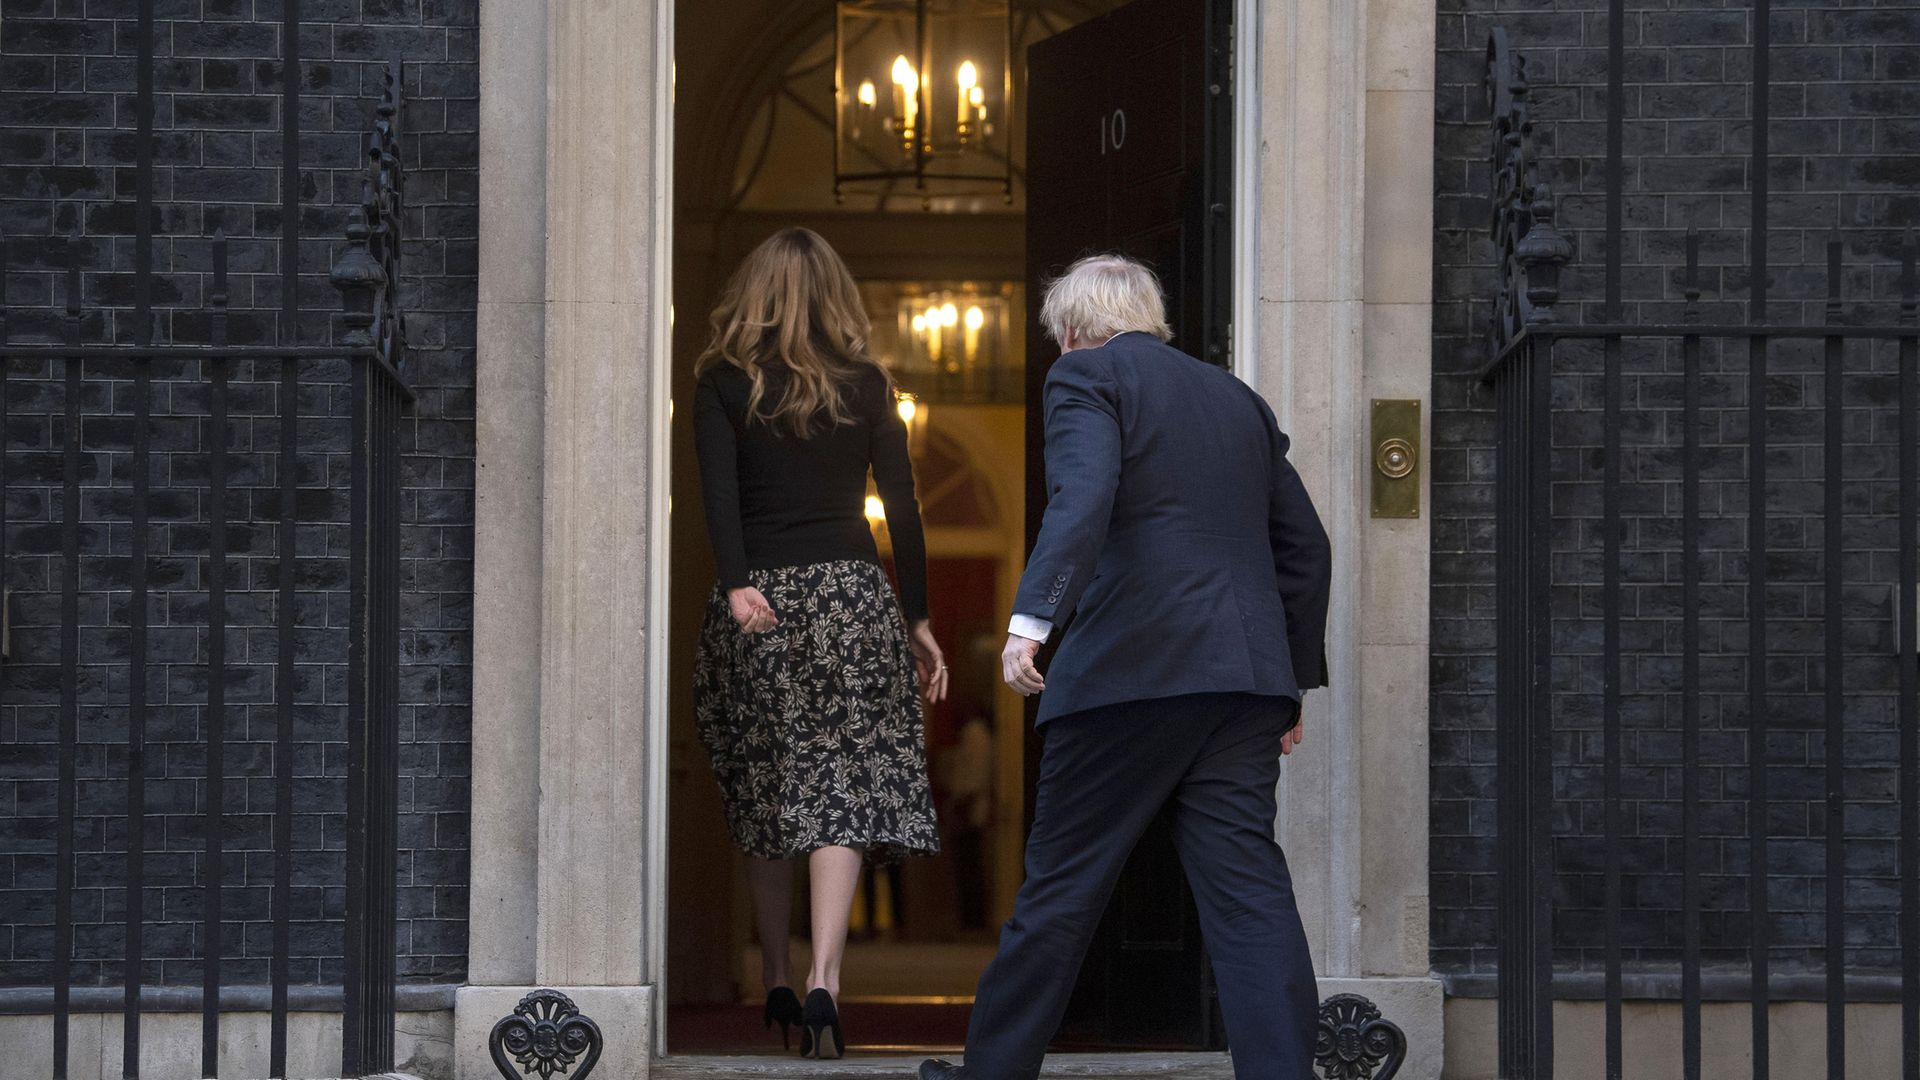 Prime Minister Boris Johnson and Carrie Symonds walking back into No.10 Downing Street - Credit: PA